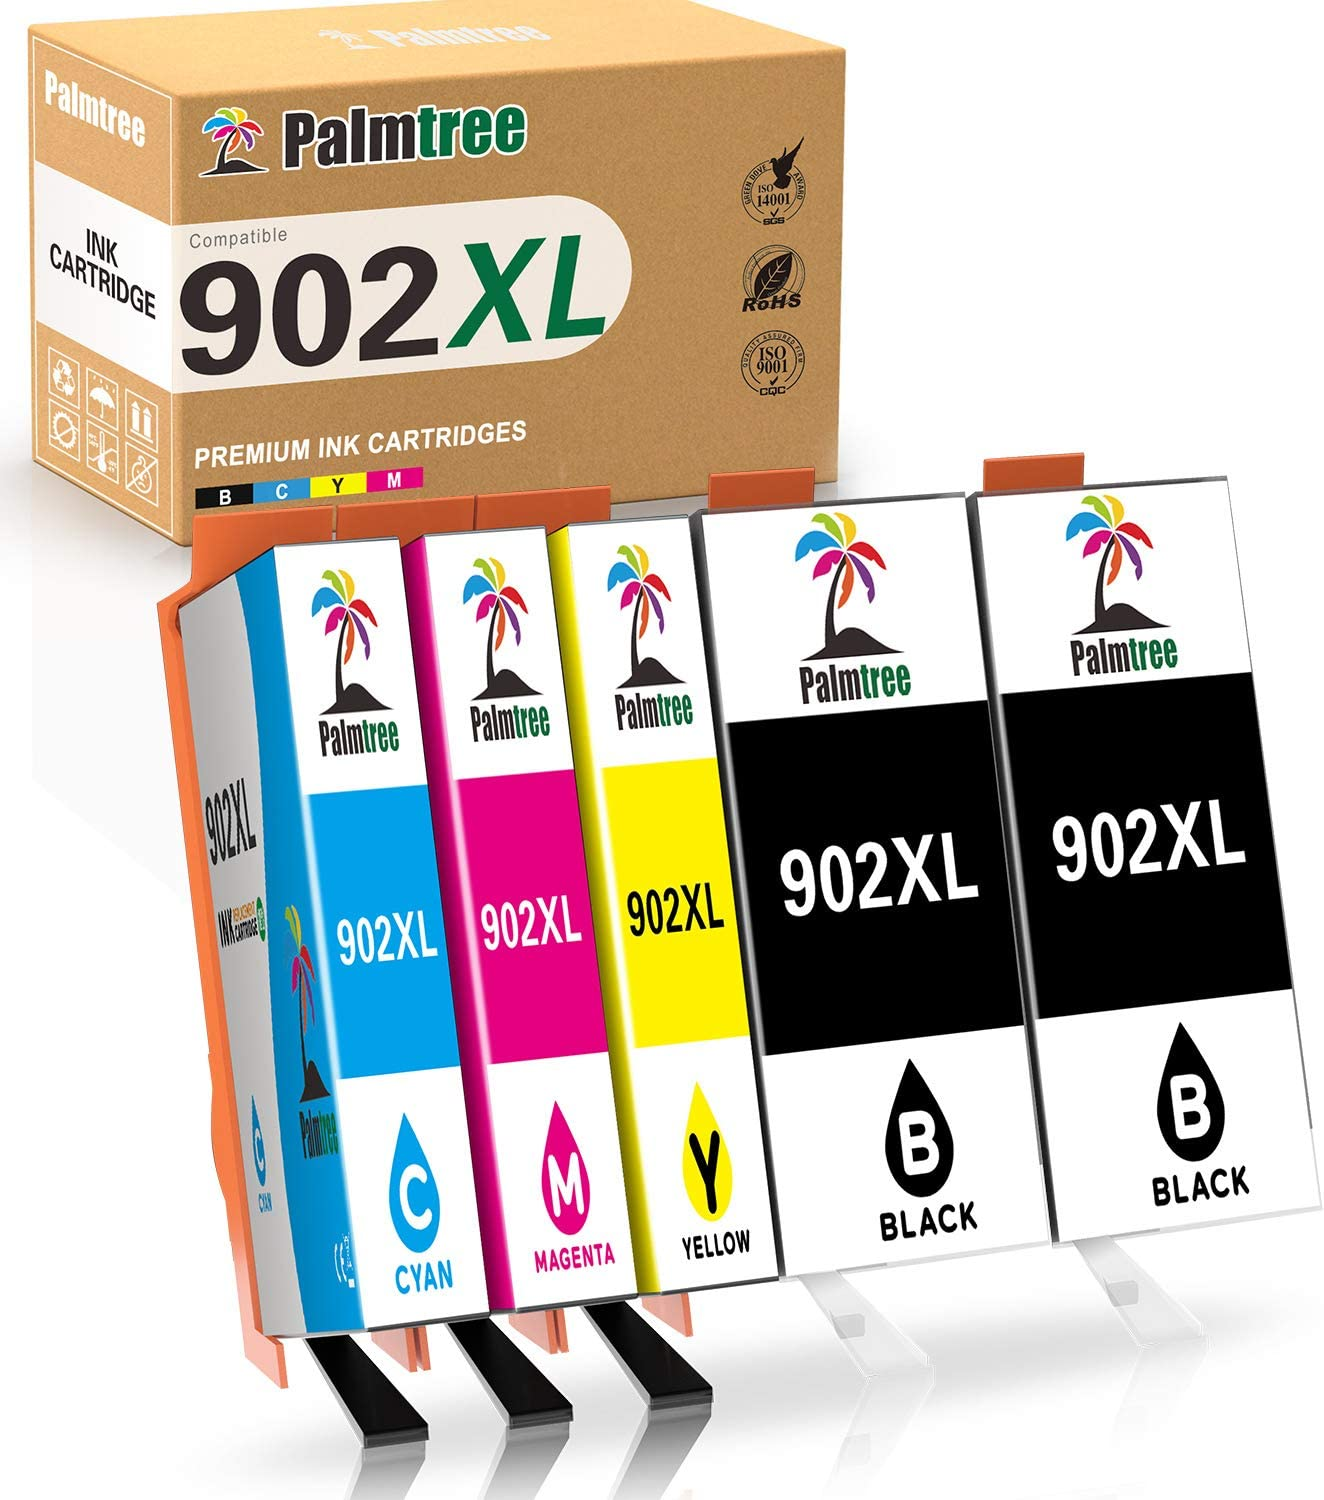 Palmtree Compatible Ink Cartridge Replacement for HP 902XL 902 XL to use with OfficeJet Pro 6968 6978 6958 6962 6954 6960 6970 6979 6950 6975 Printer (2Black Yellow Cyan Magenta, 5-Pack)